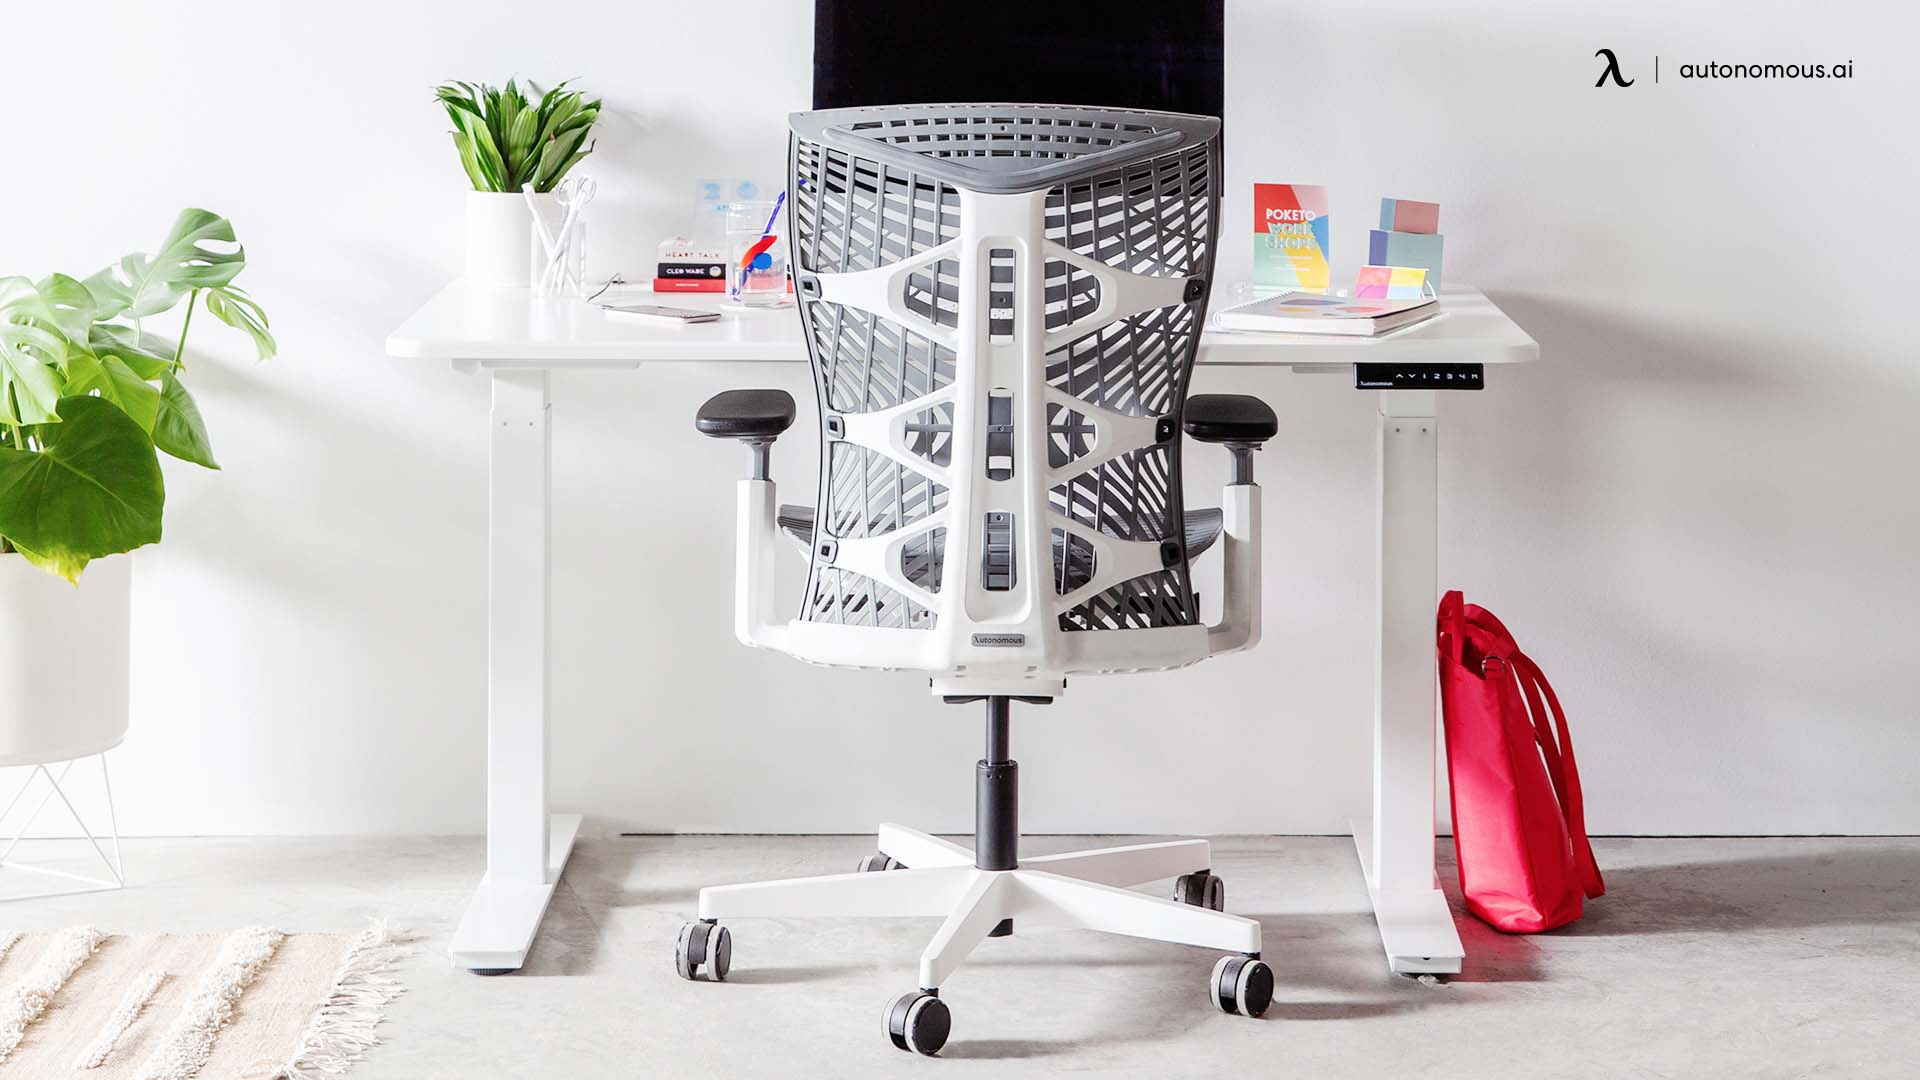 Considerations When Choosing a Desk for a Small Home Office